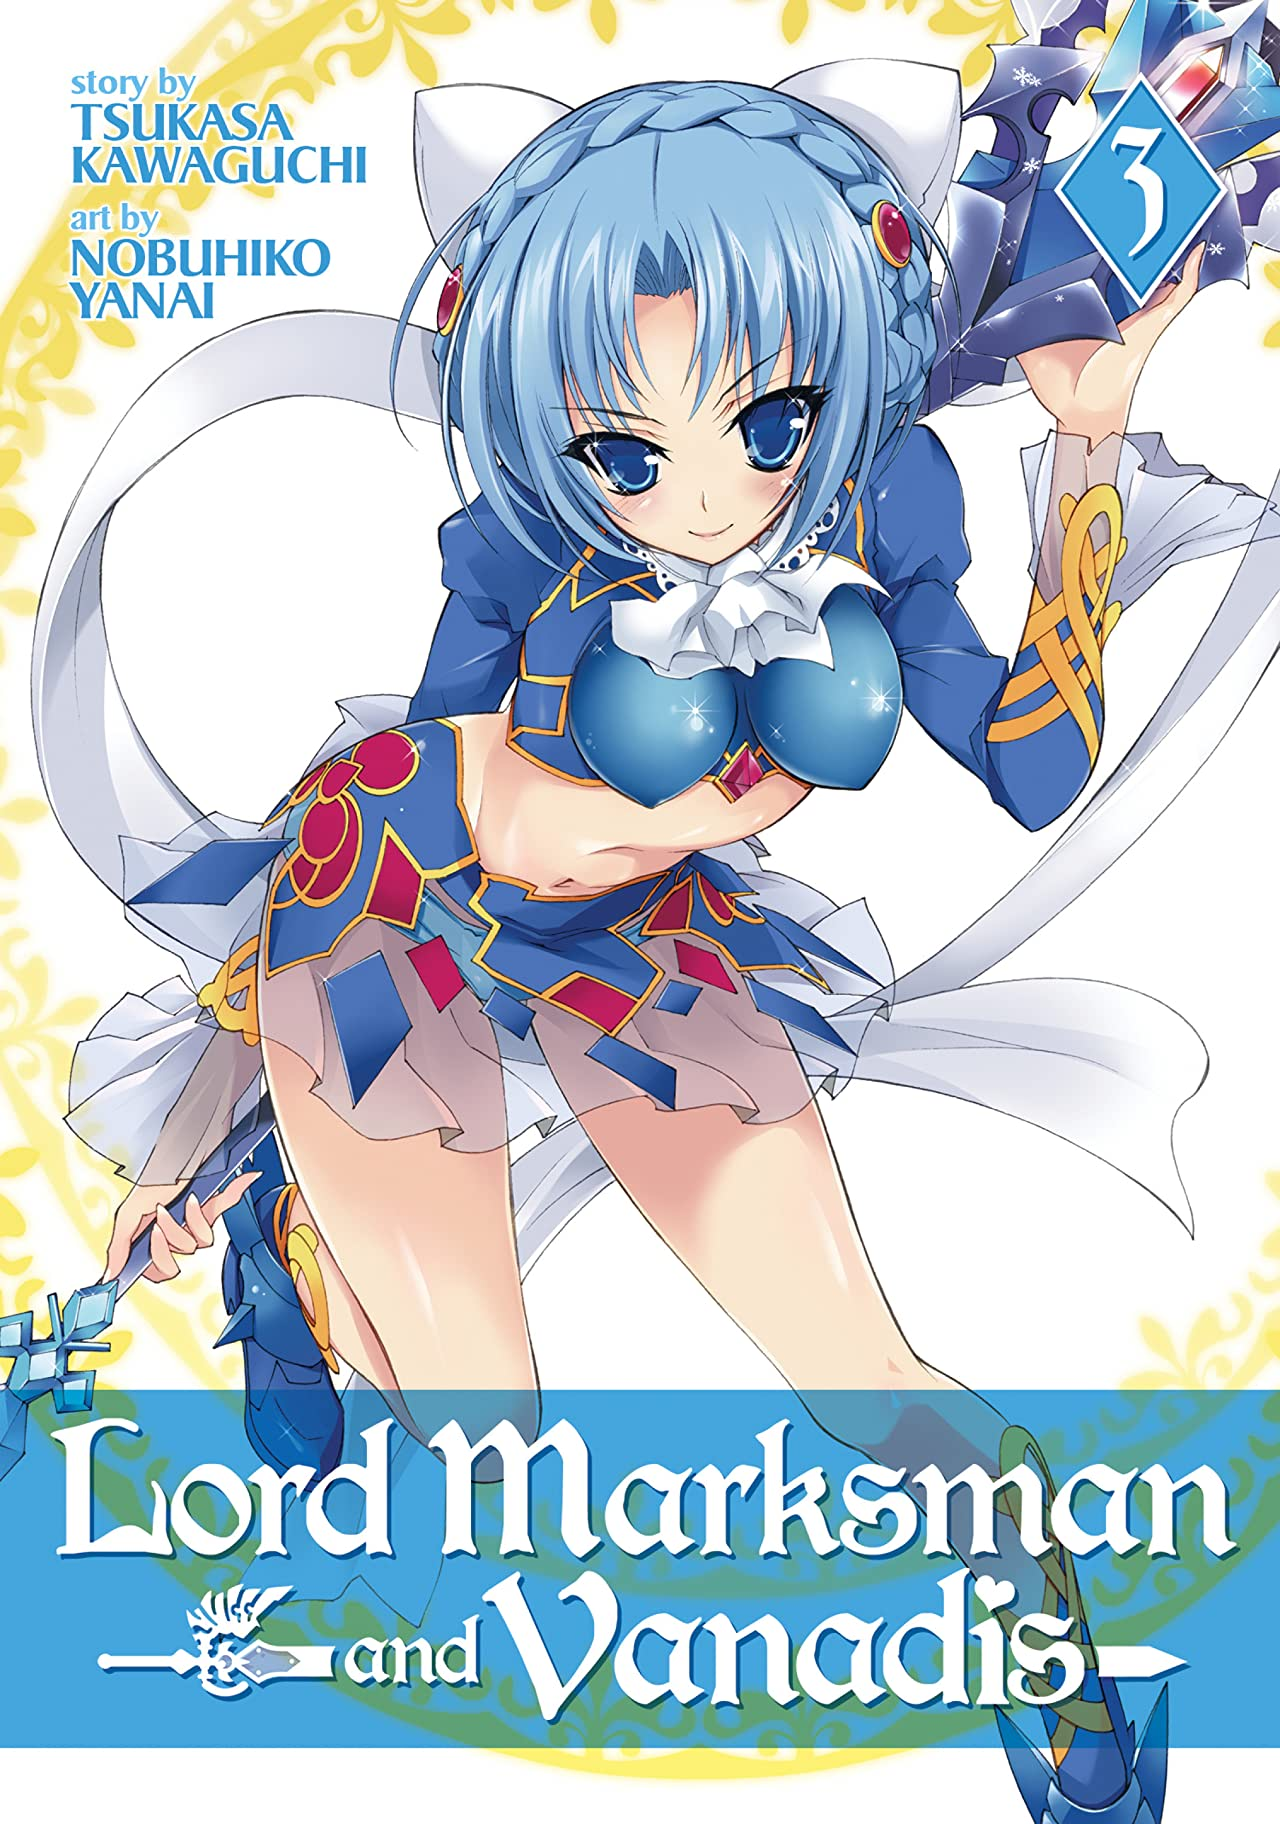 Lord Marksman and Vanadis Vol. 3